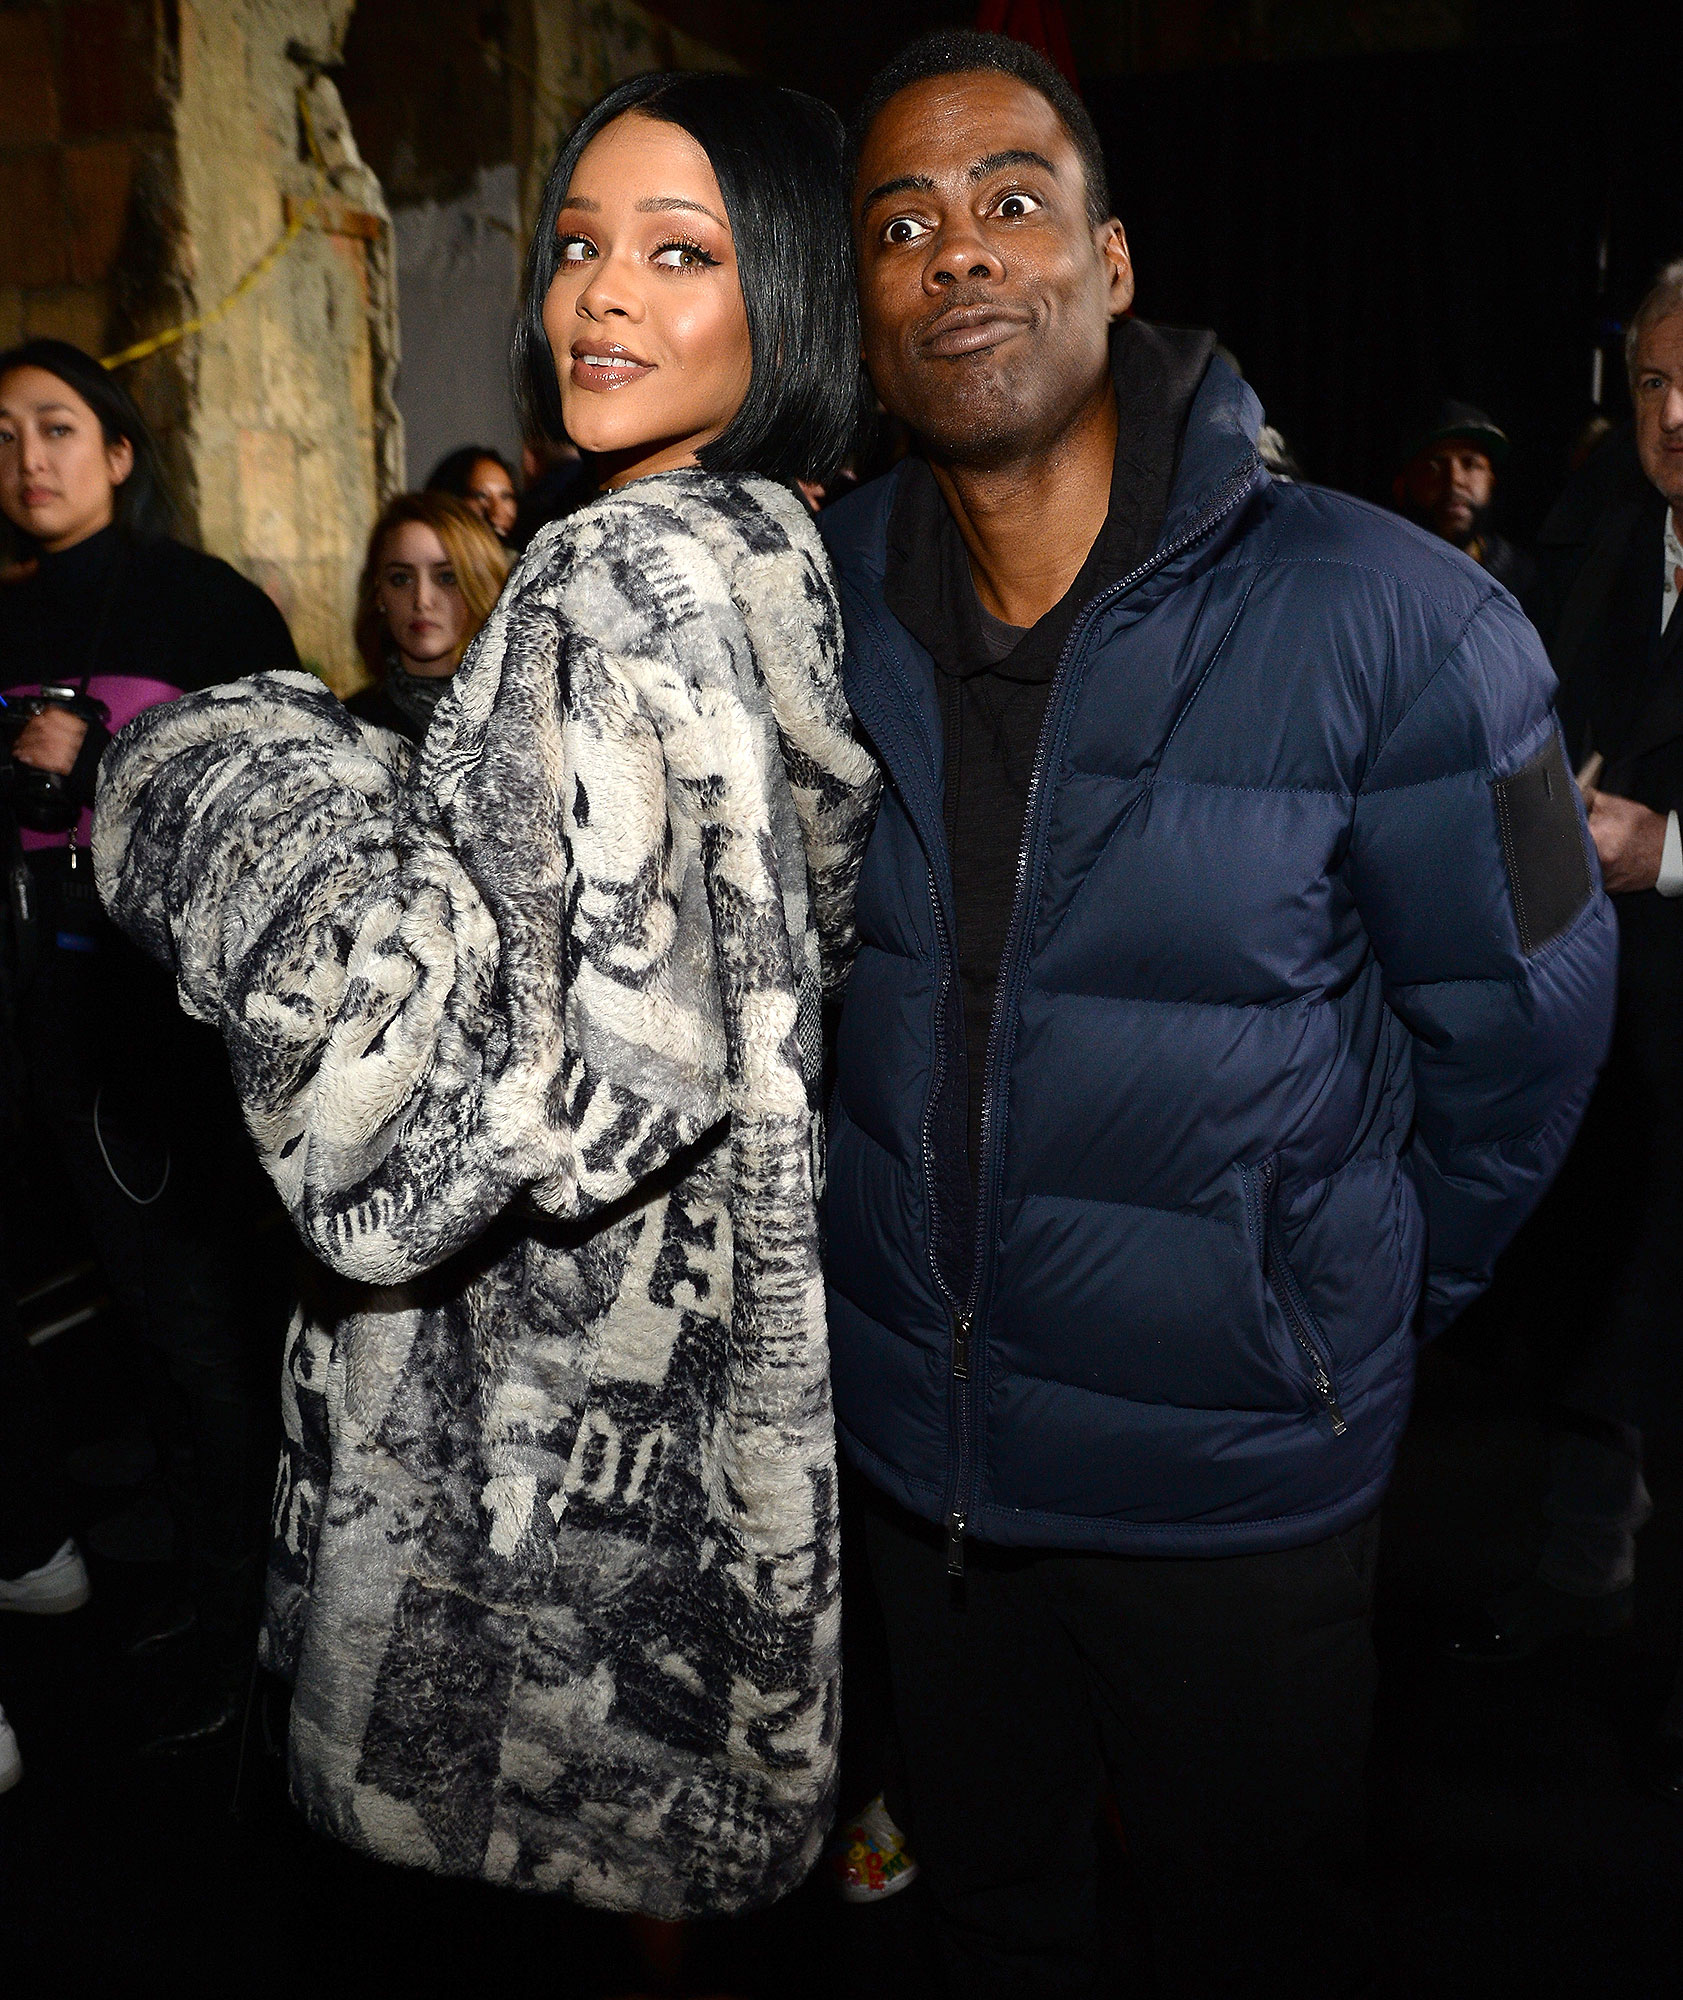 WHEN RIHANNA DIDN'T EVEN REALIZE CHRIS ROCK WAS FLIRTING WITH HER